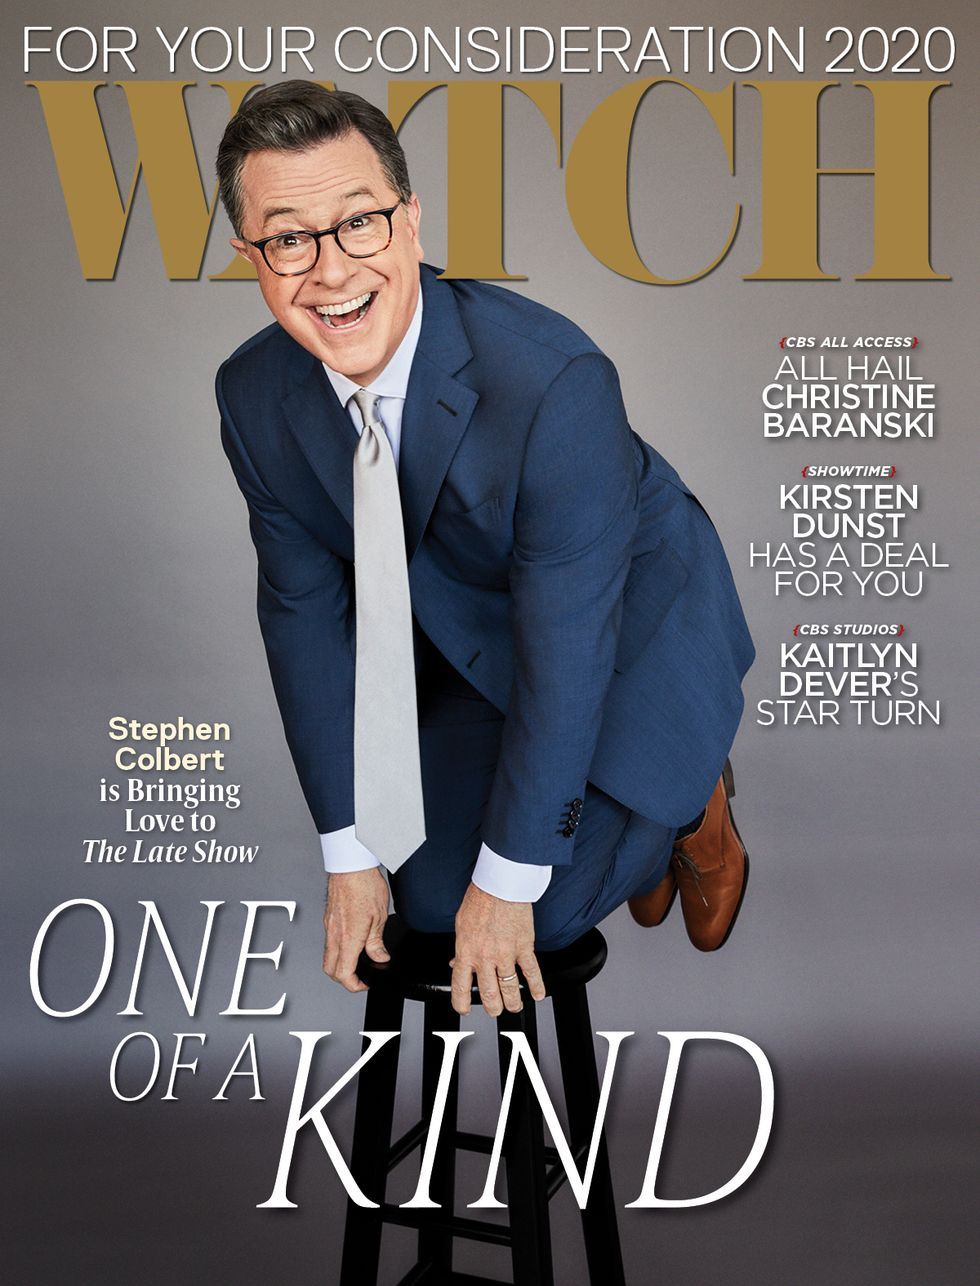 Stephen Colbert in a blue suit kneeling on a stool for a magazine cover.